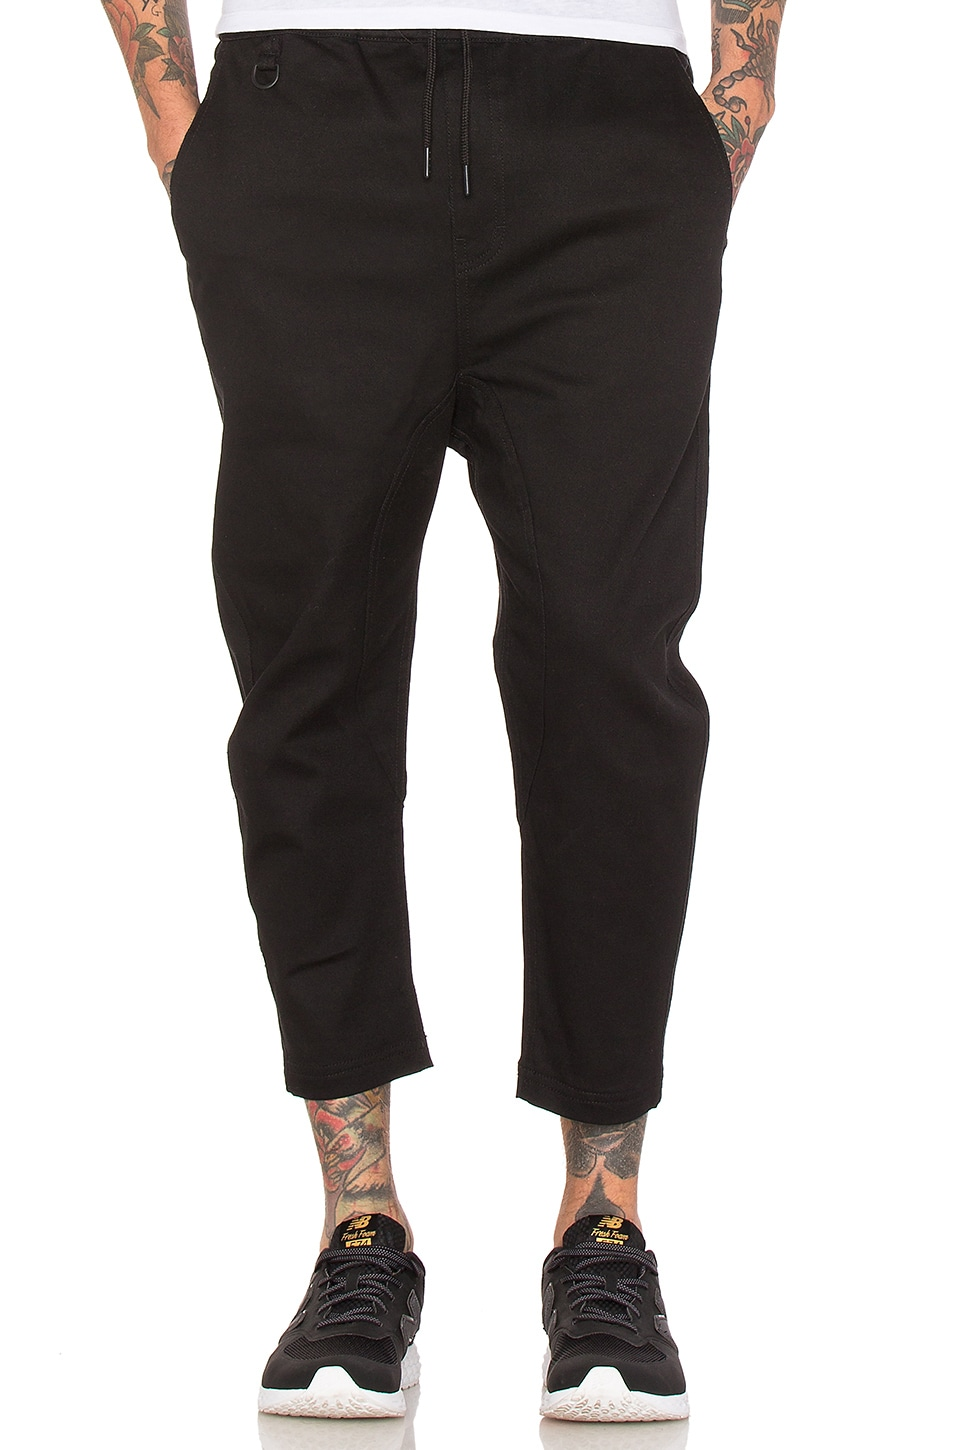 Publish Slash 3/4 Pant in Black